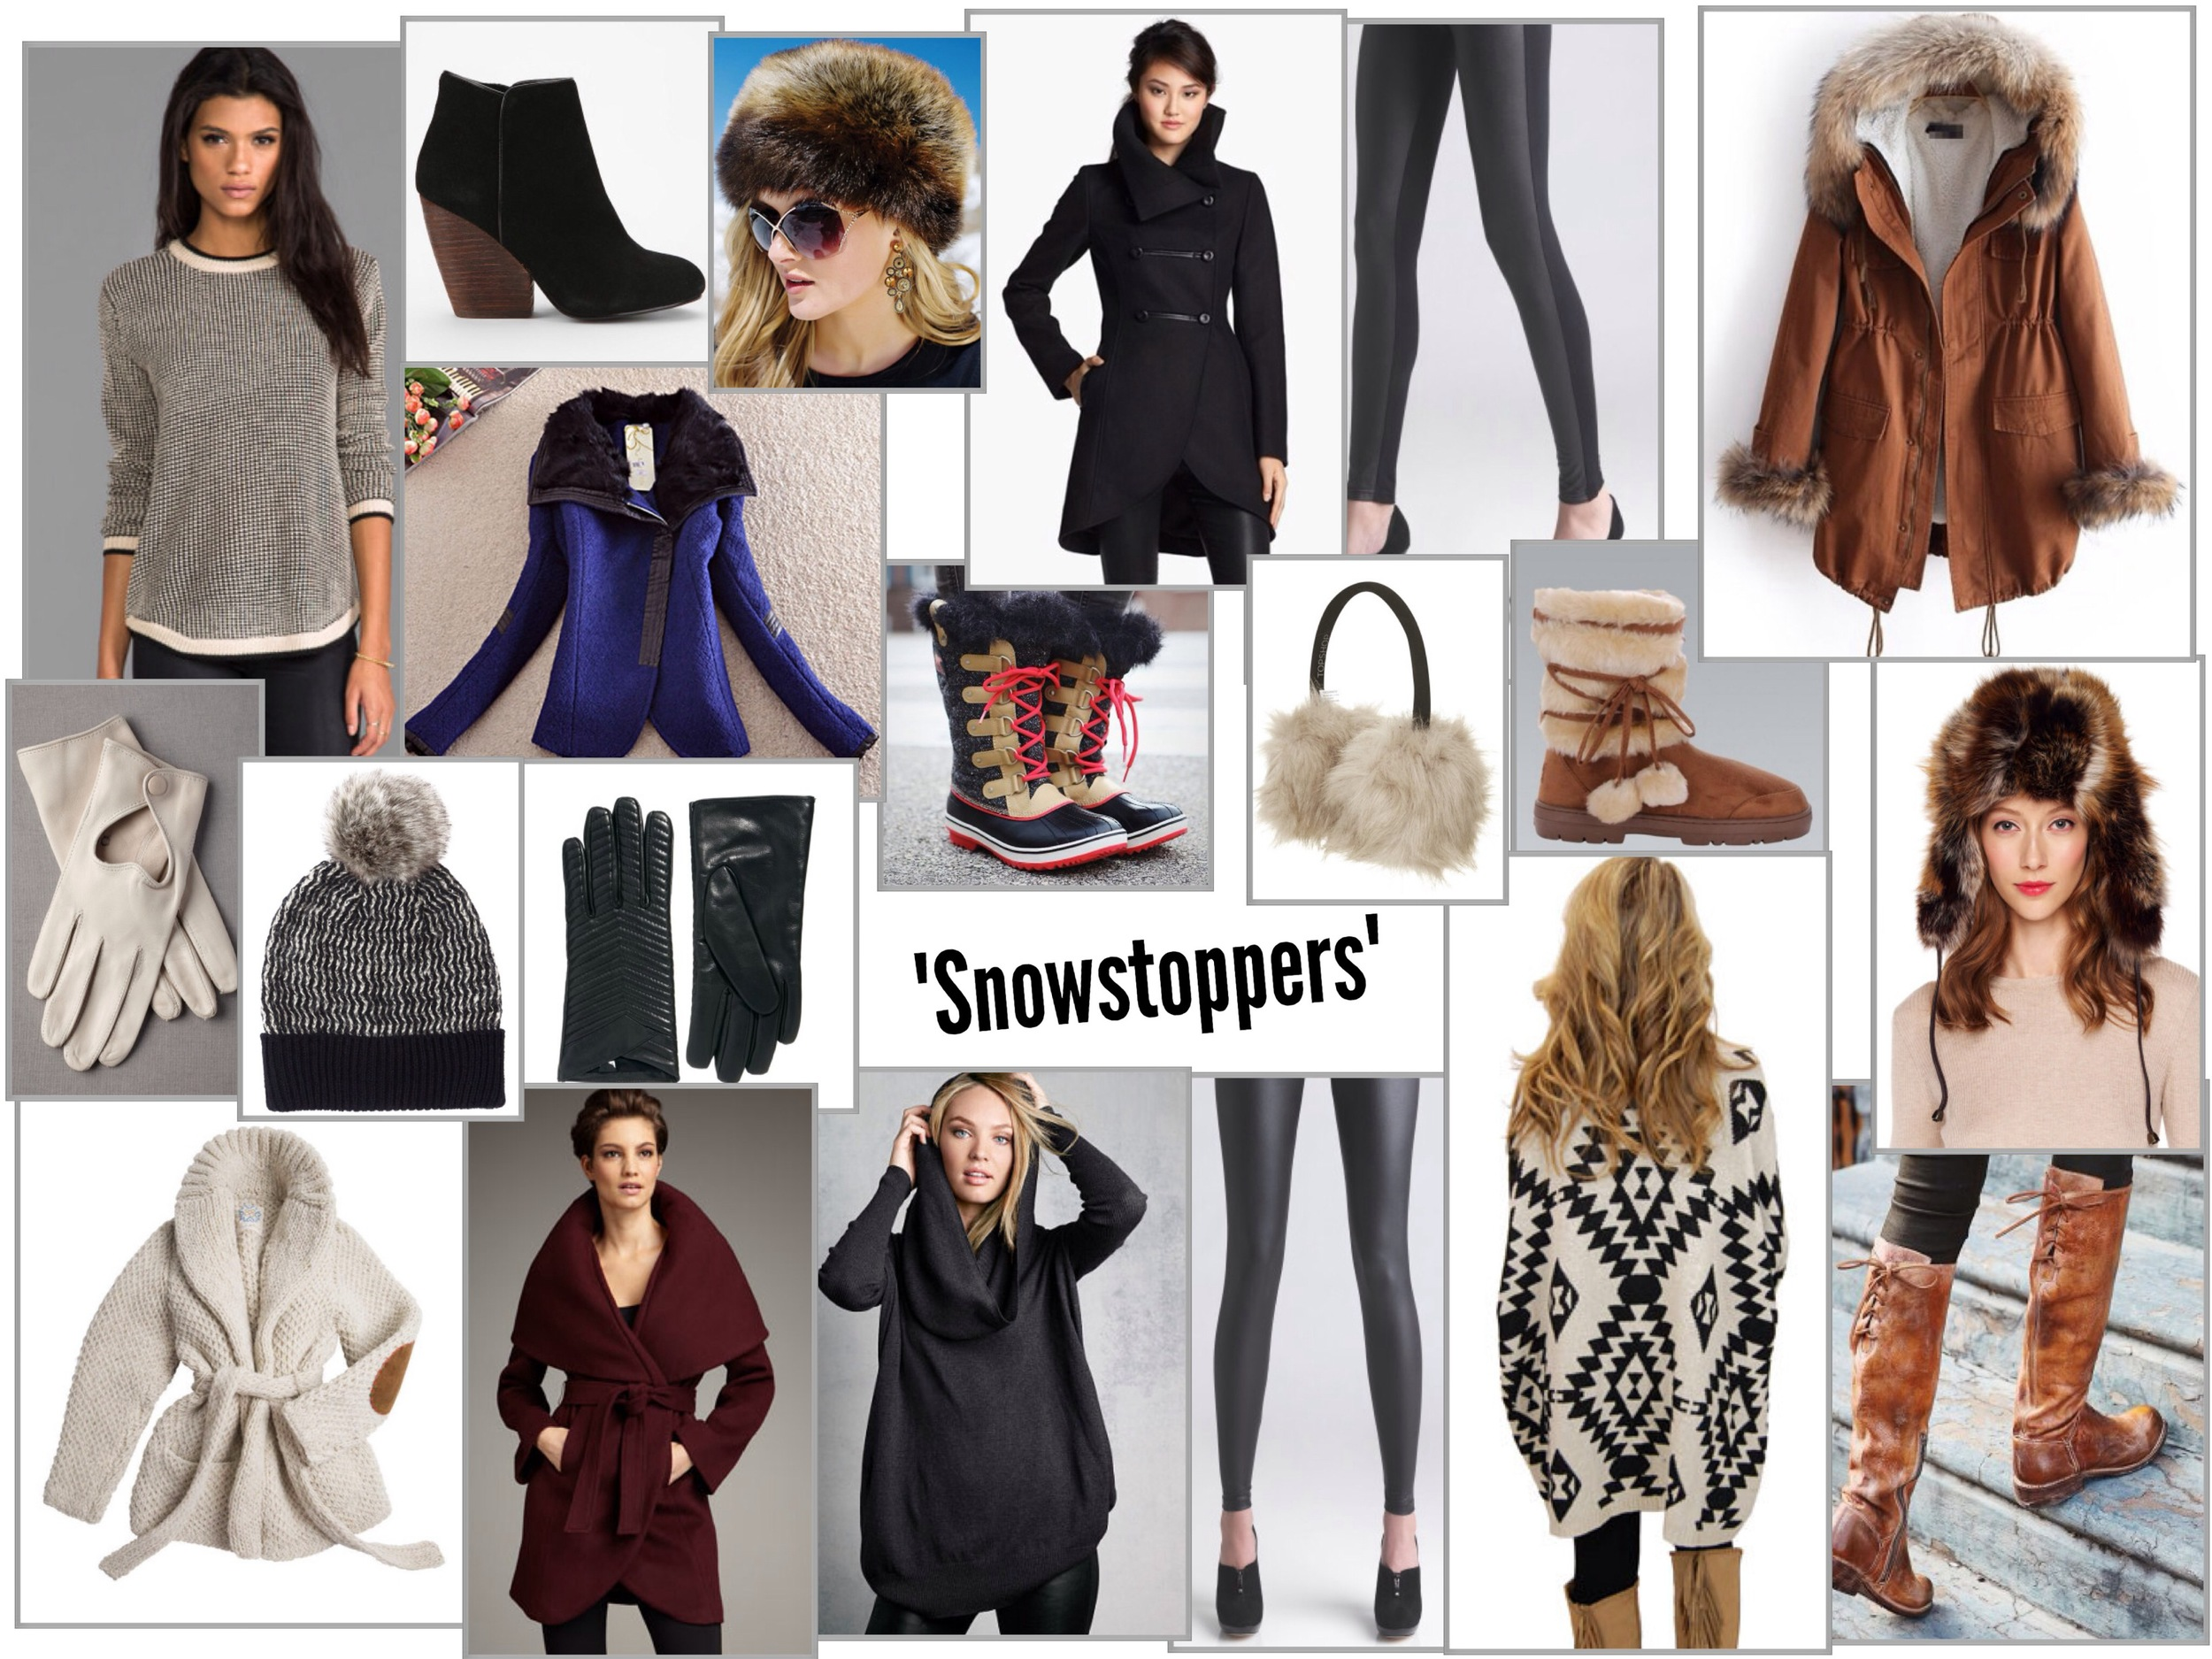 From left to right . Row 1: Simone Sweater |  Ecote Growler Suede Ankle Boot |  Tanuki Faux Fur Russian Hat |  Mackage Black Double Breasted Coat |  Front Face Leather Legging |  Faux Fur Lined Brown Winter Coat Row 2:  Affectionate Adieu White Leather Gloves |  Zig Zag Beanie |  Black Leather Quilted Gloves |  Tofino Herringbone Boot |  SNO Faux Fur Earmuffs |  Brown Faux Fur Tie Up Winter Boots | Fox Faux Fur Patchwork Trapper Hat Row 3: Mexchic Heritage Sweater |  Marla Wrap Coat |  Multi-Way Sweater |  Cracked Faux Leather Legging |  The Sierra Sweater |  Manchester Tall Boot